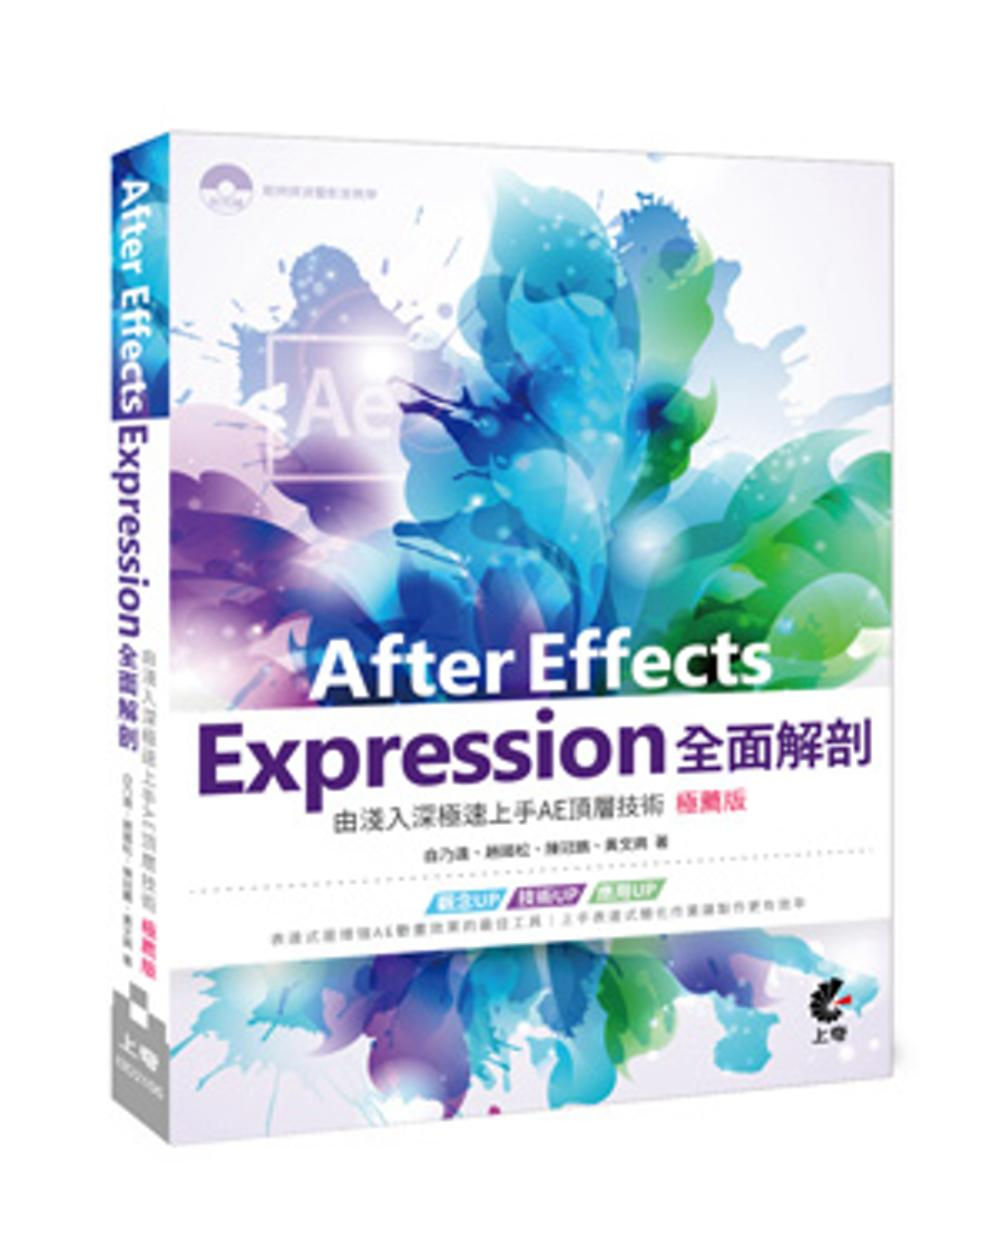 After Effects E...